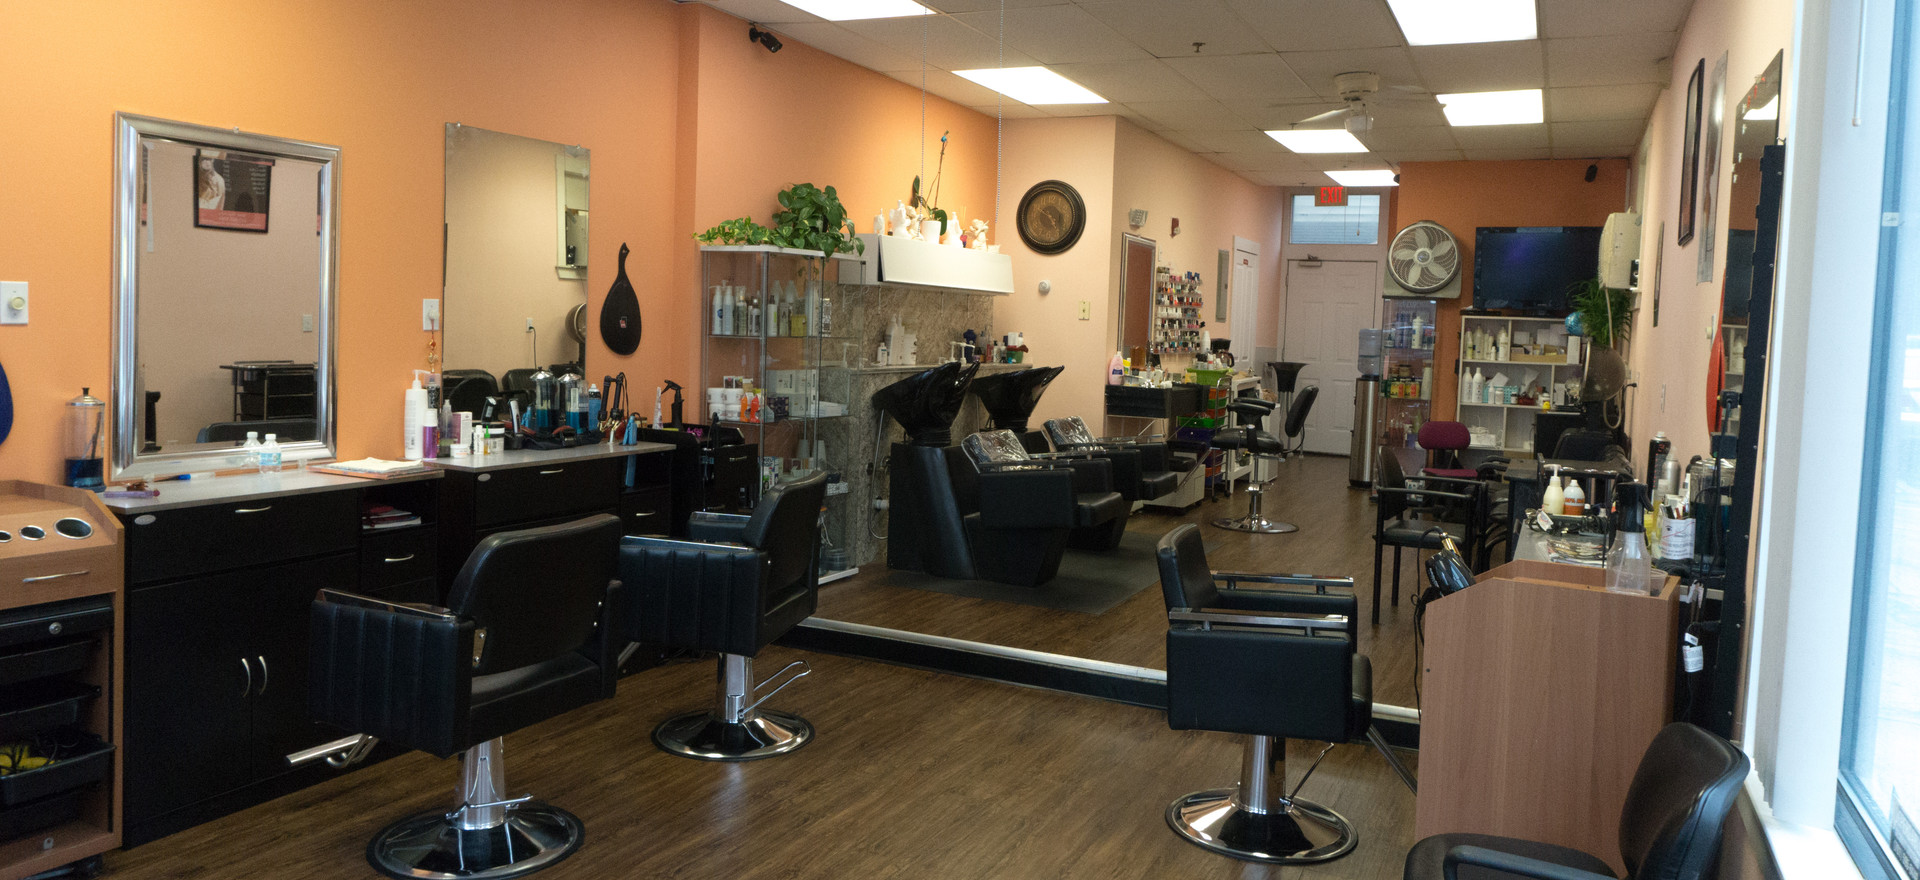 Biddy Salon 2.jpg